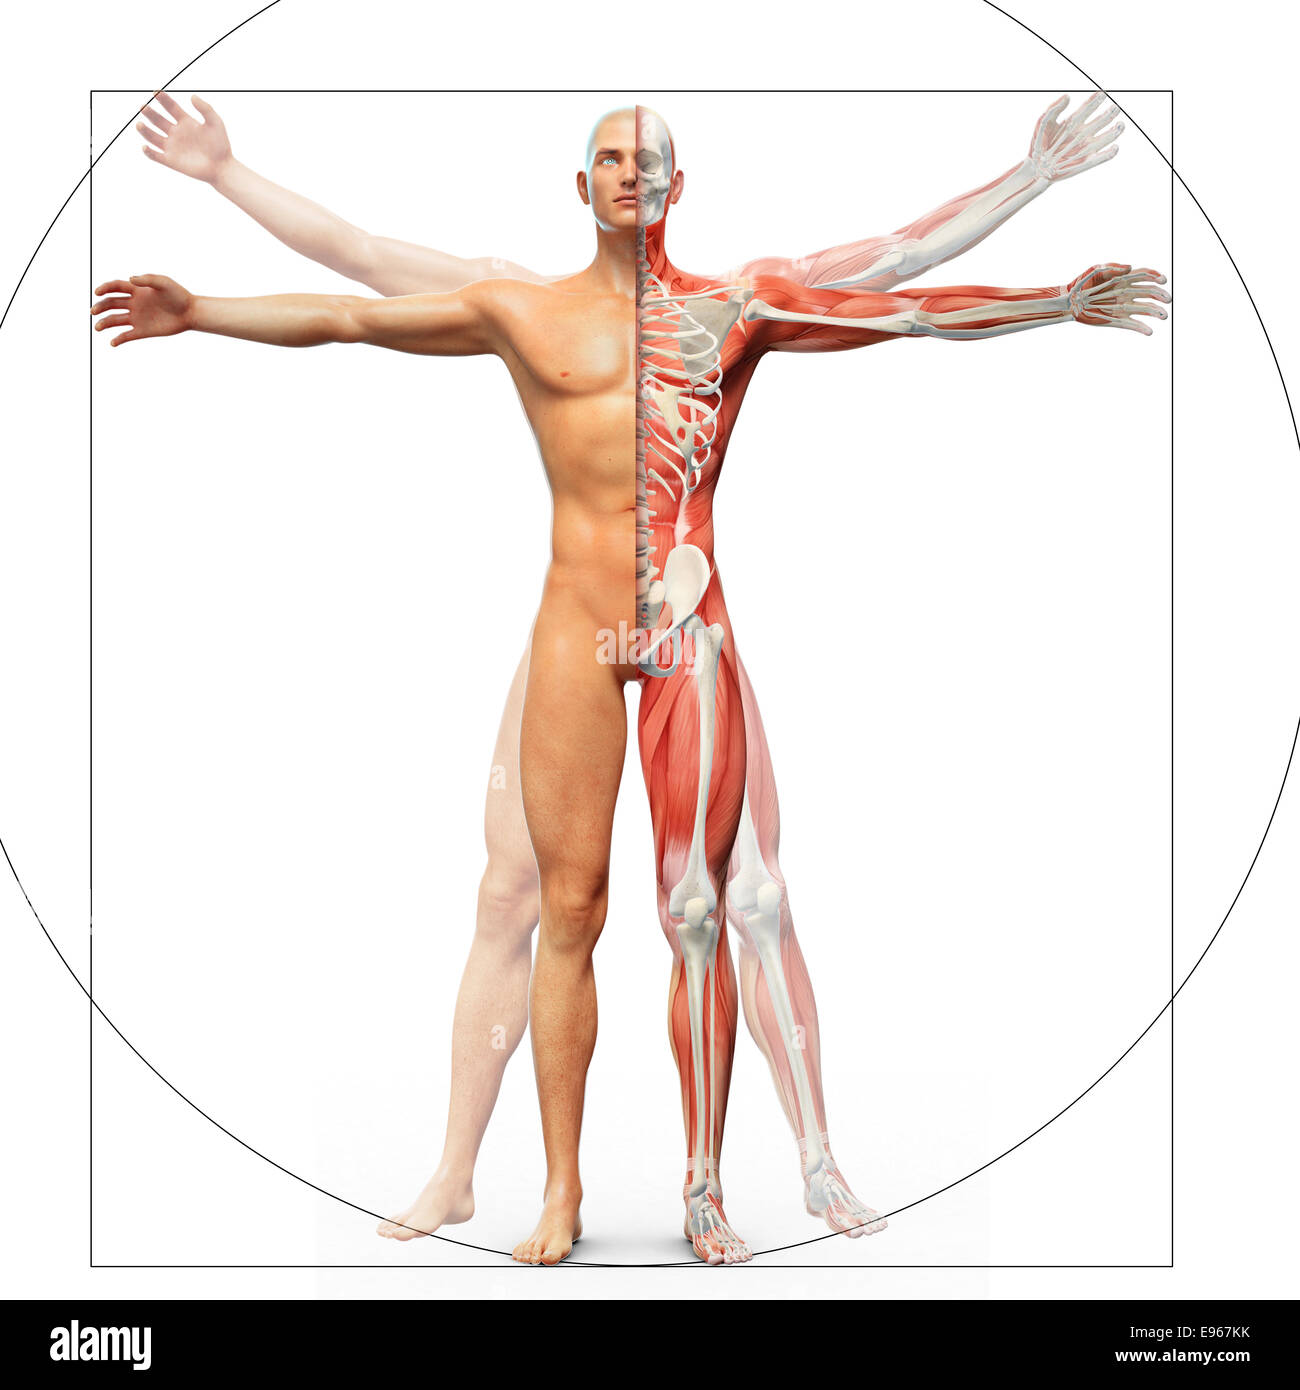 Vitruvian Man Anatomy Stock Photos & Vitruvian Man Anatomy Stock ...